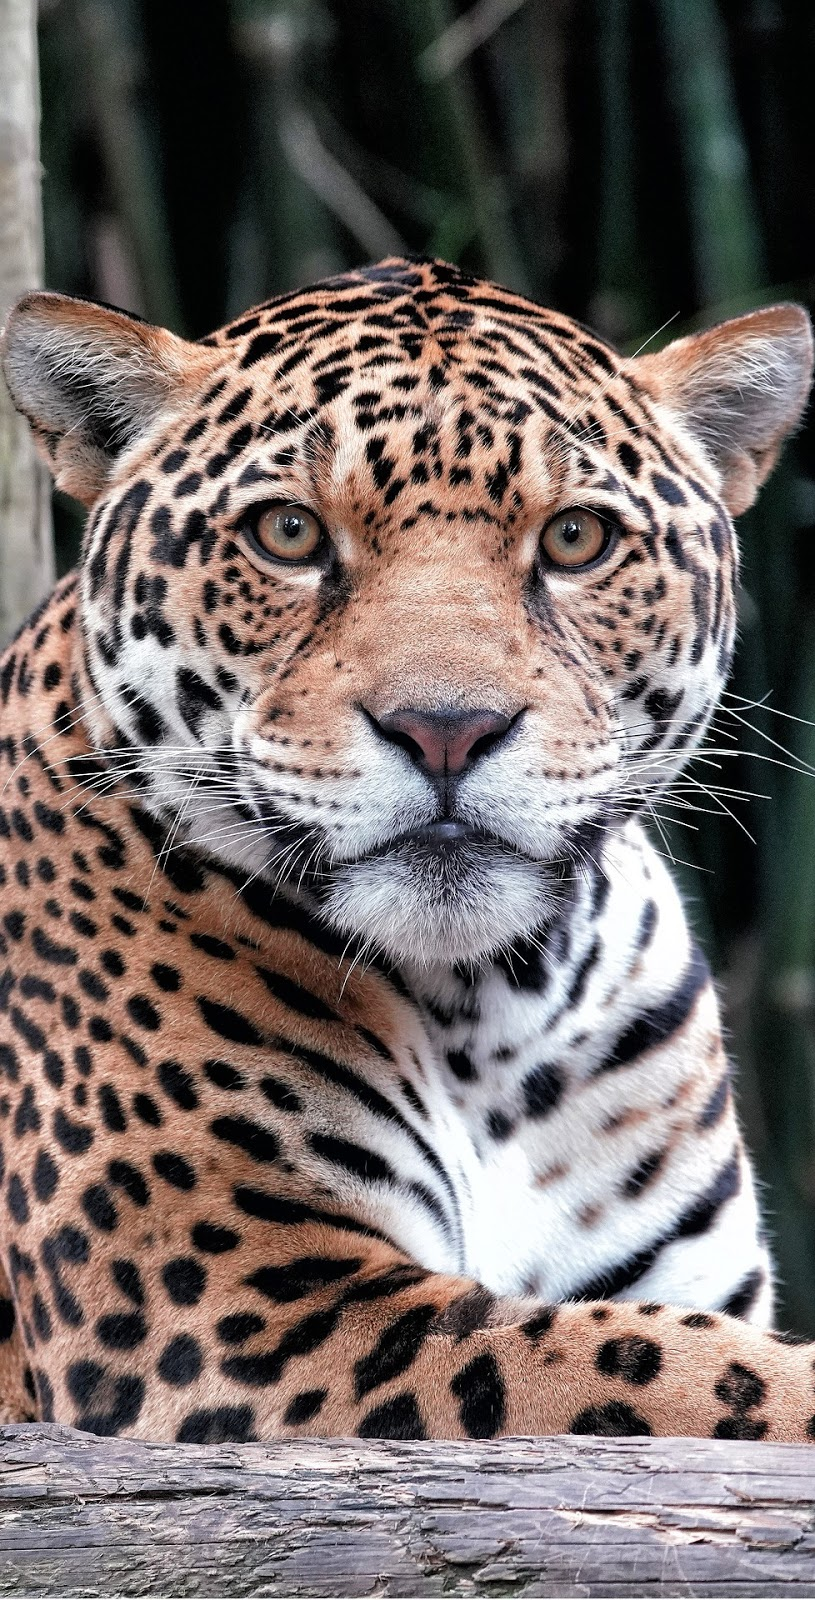 A majestic jaguar.